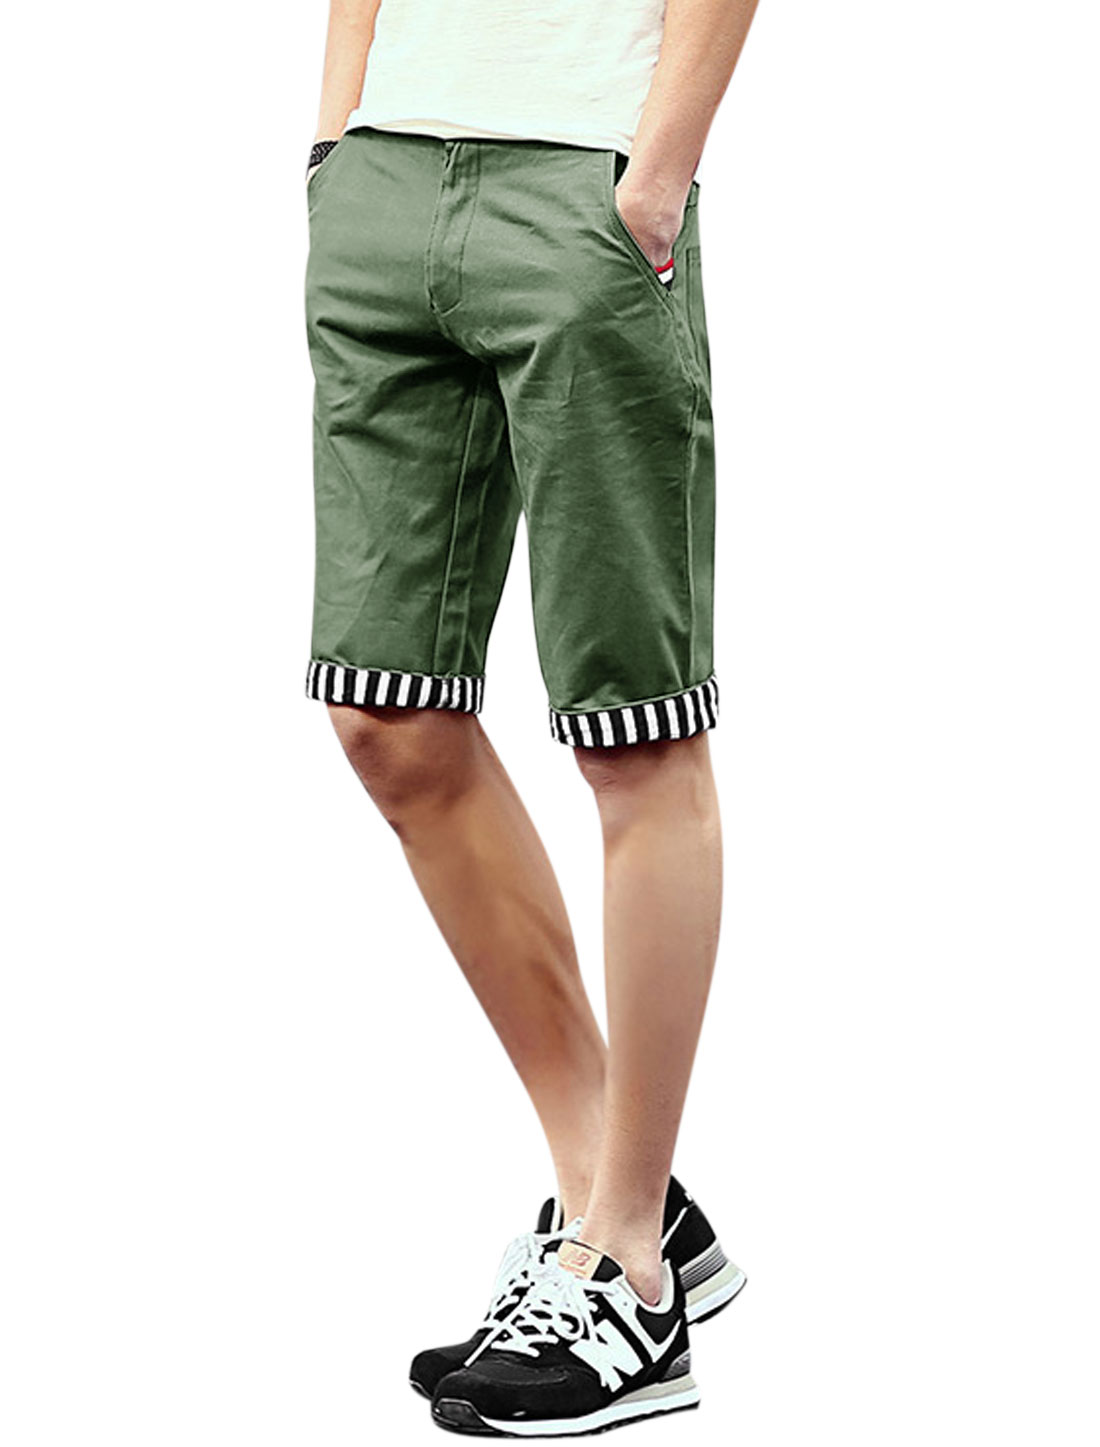 Men Mid Rise Belt Loop Zip Fly Pockets Slim Fit Shorts Army Green W32